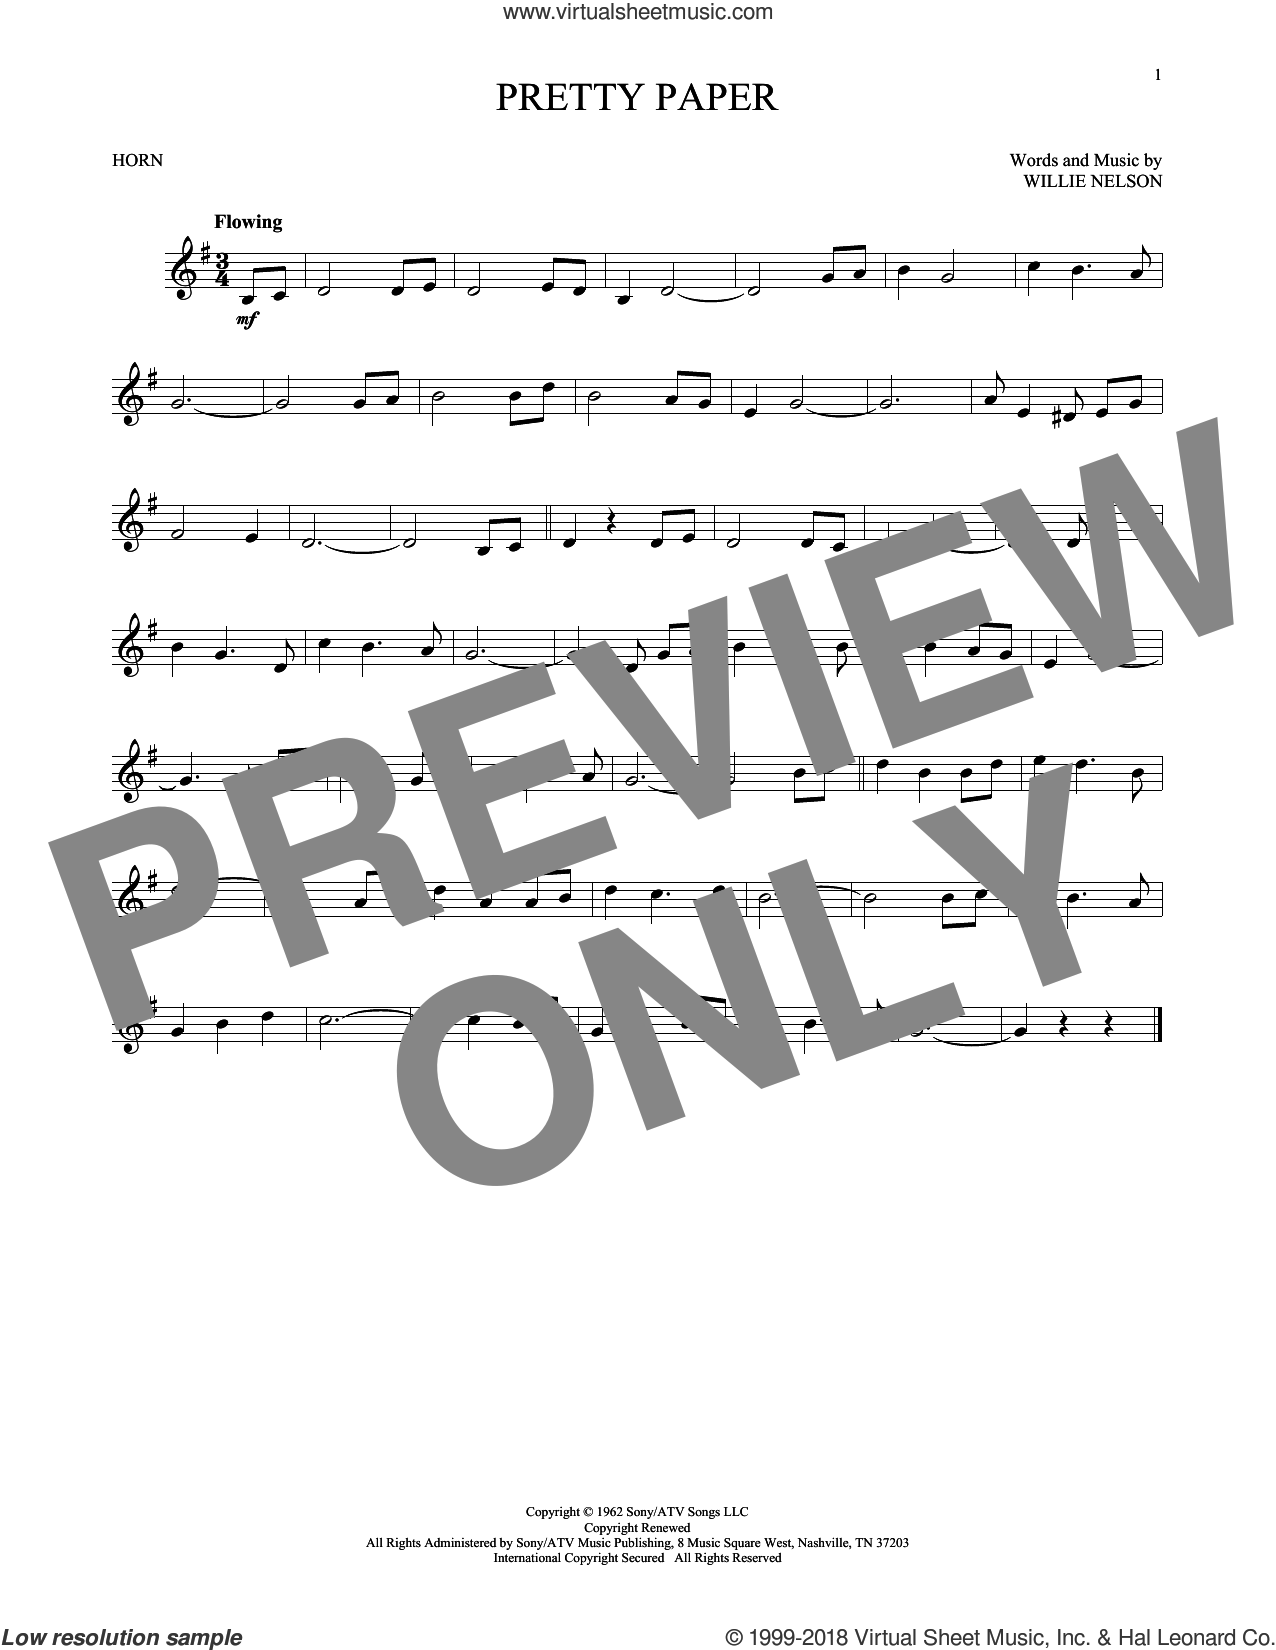 Pretty Paper sheet music for horn solo by Willie Nelson, intermediate skill level